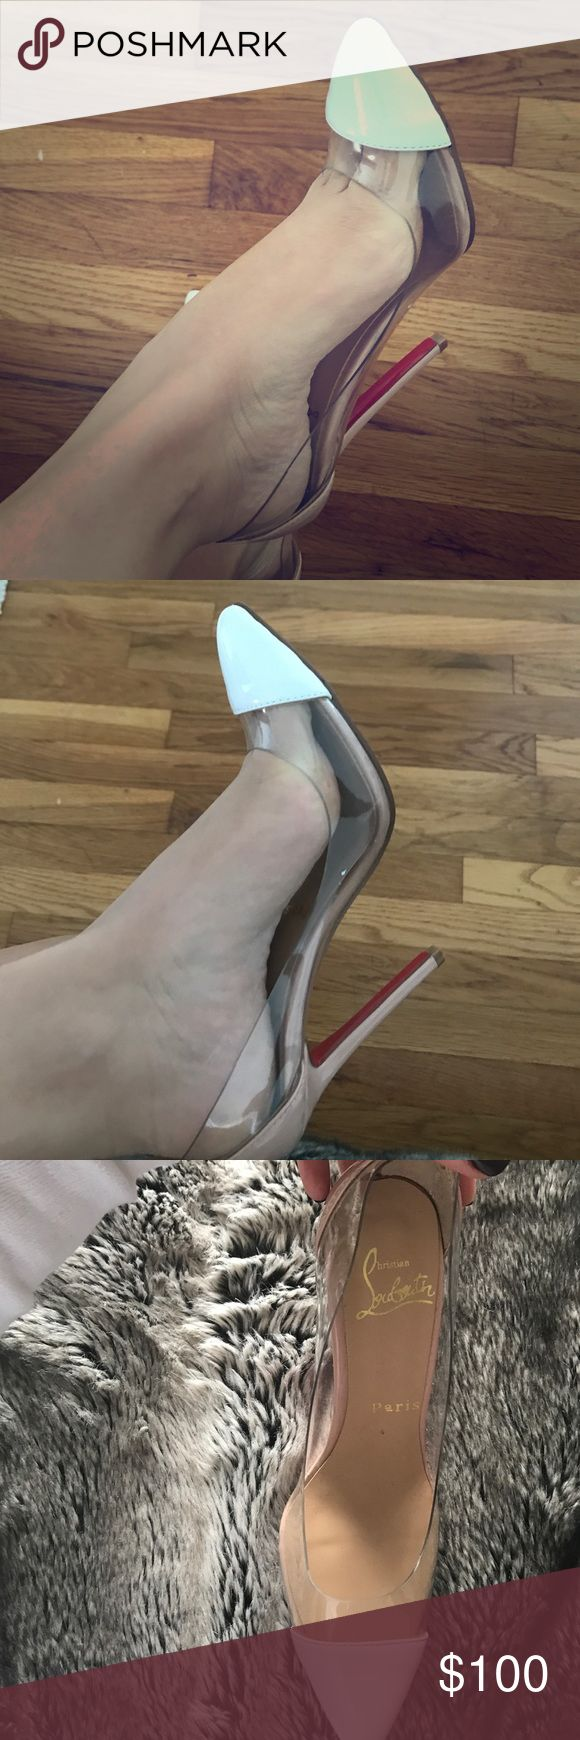 Brand new cl shoes Brand new red bottom cl shoes Christian Louboutin Shoes Heels